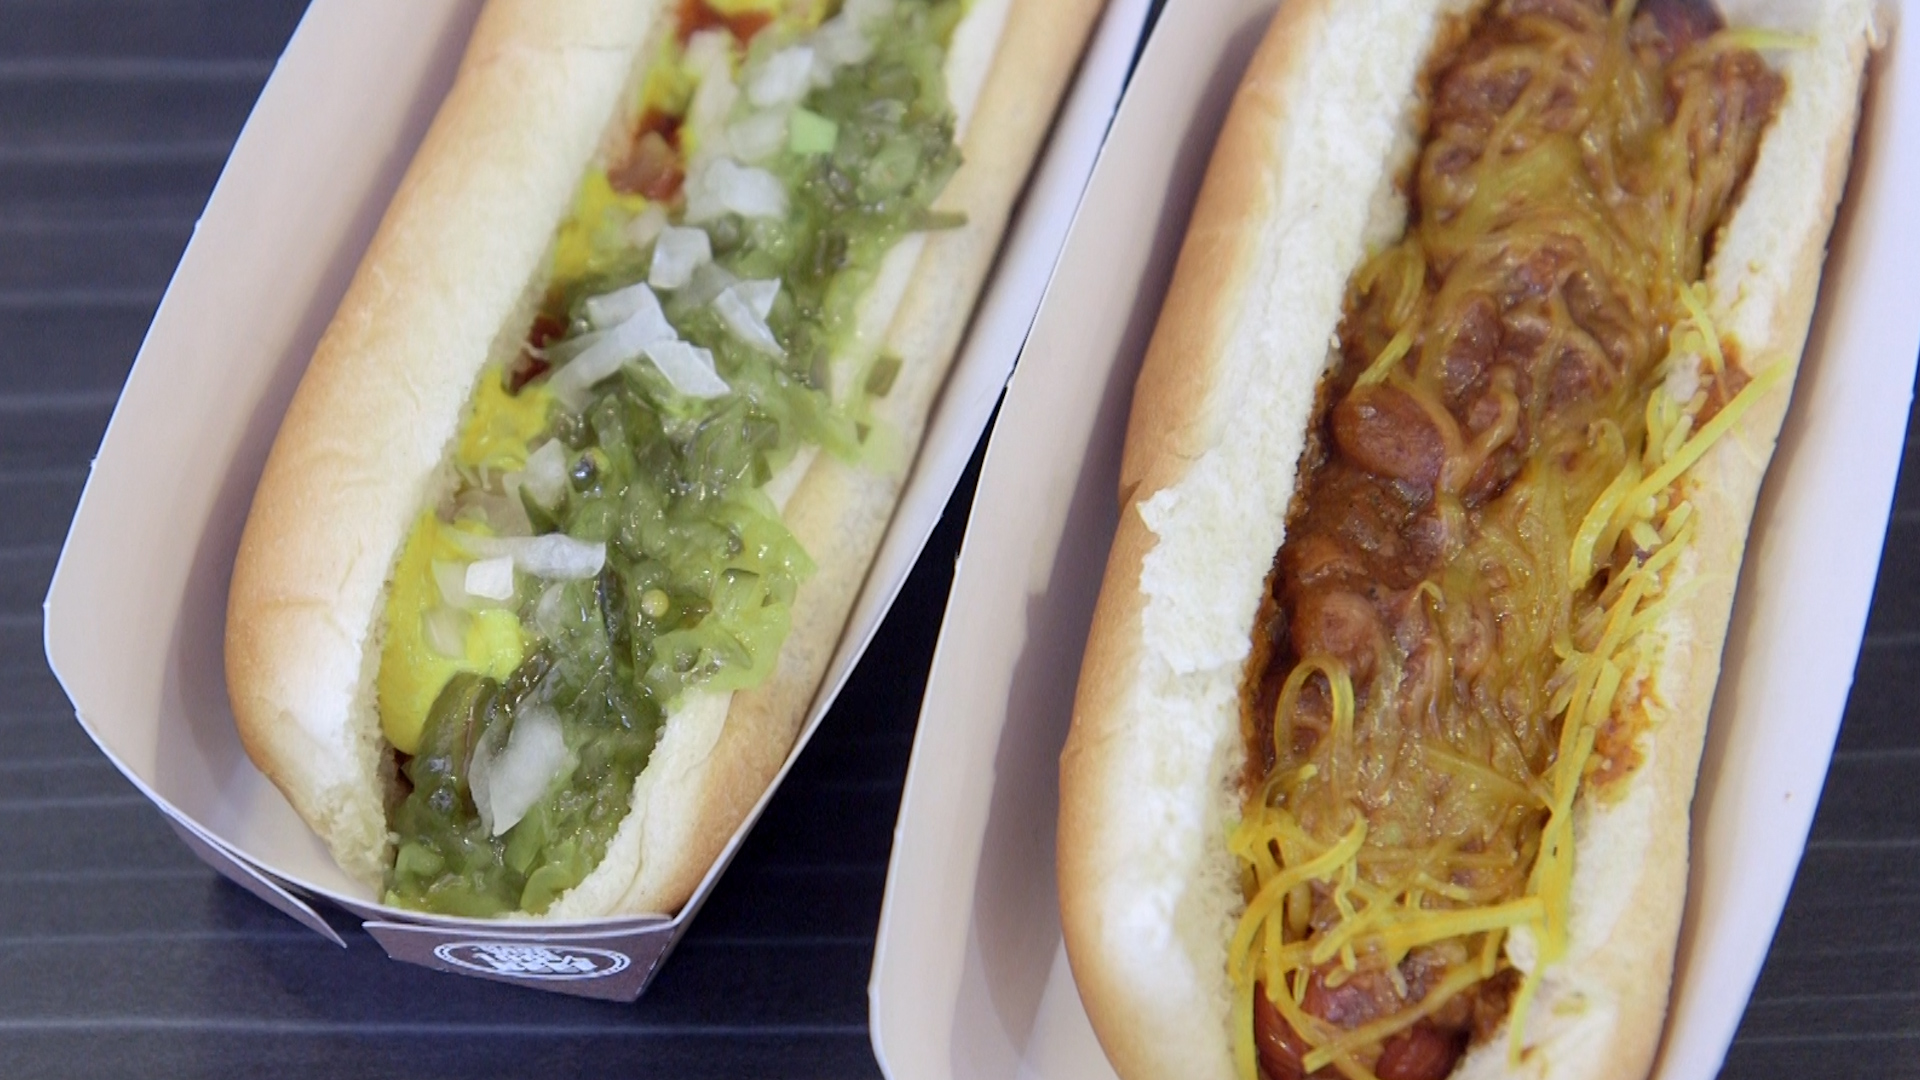 Are the Burger King Hot Dogs Any Good? - NBC News